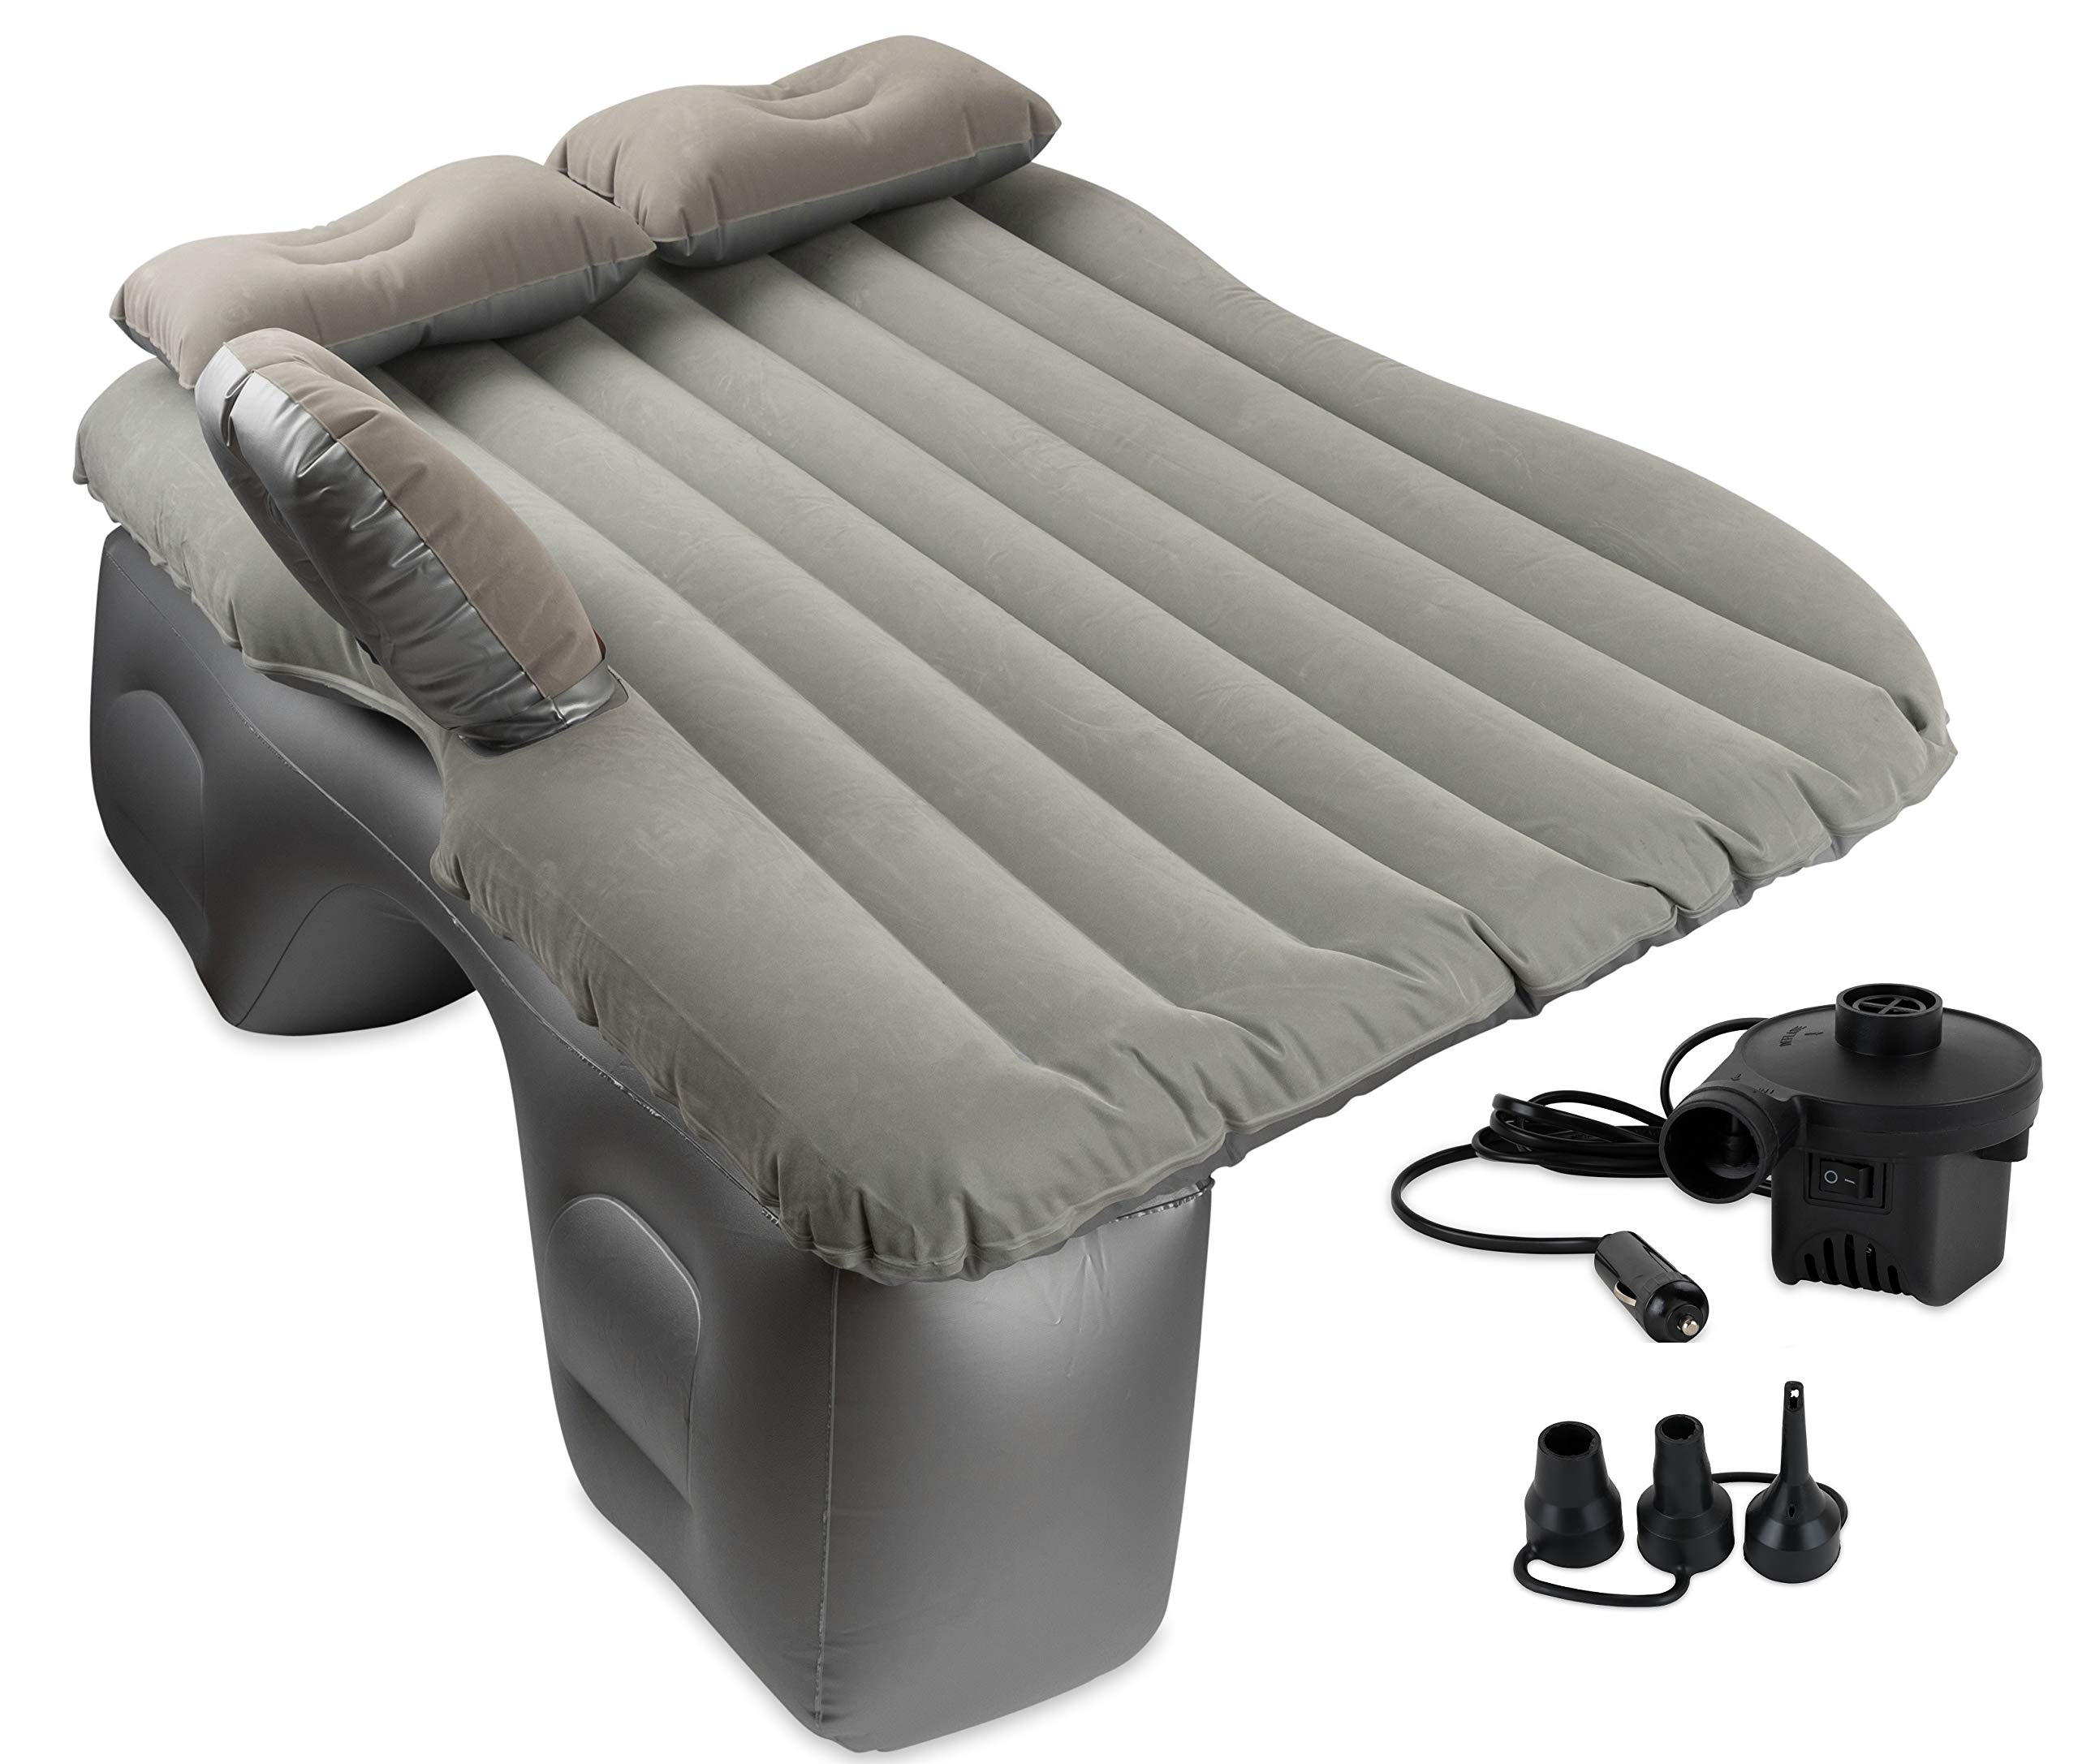 OLIVIA & AIDEN Inflatable Car Air Mattress with Pump (Portable) Travel, Camping, Vacation   Back Seat Blow-Up Sleeping Pad   Truck, SUV, Minivan   Compact Twin Size by OLIVIA & AIDEN